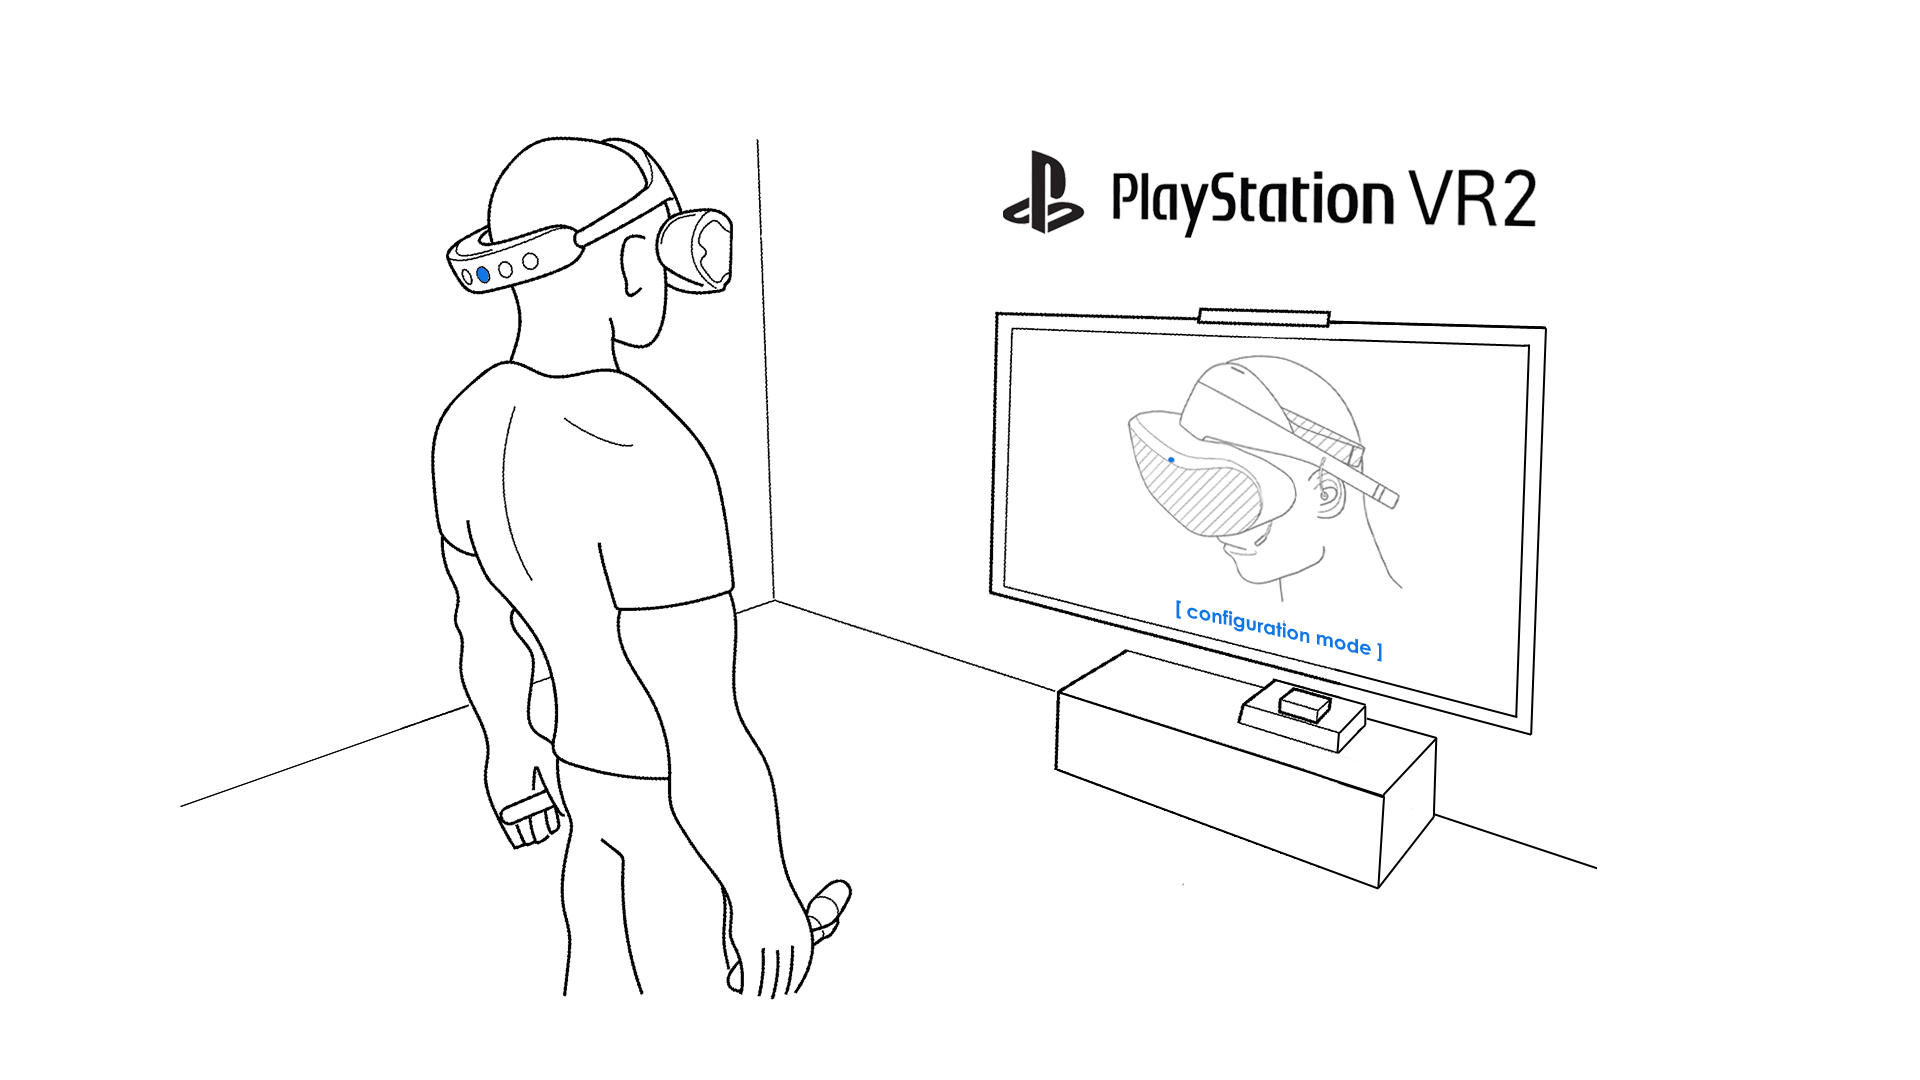 PlayStation 5 VR Wireless Headset and New Motion Controllers Detailed in Sony Patent